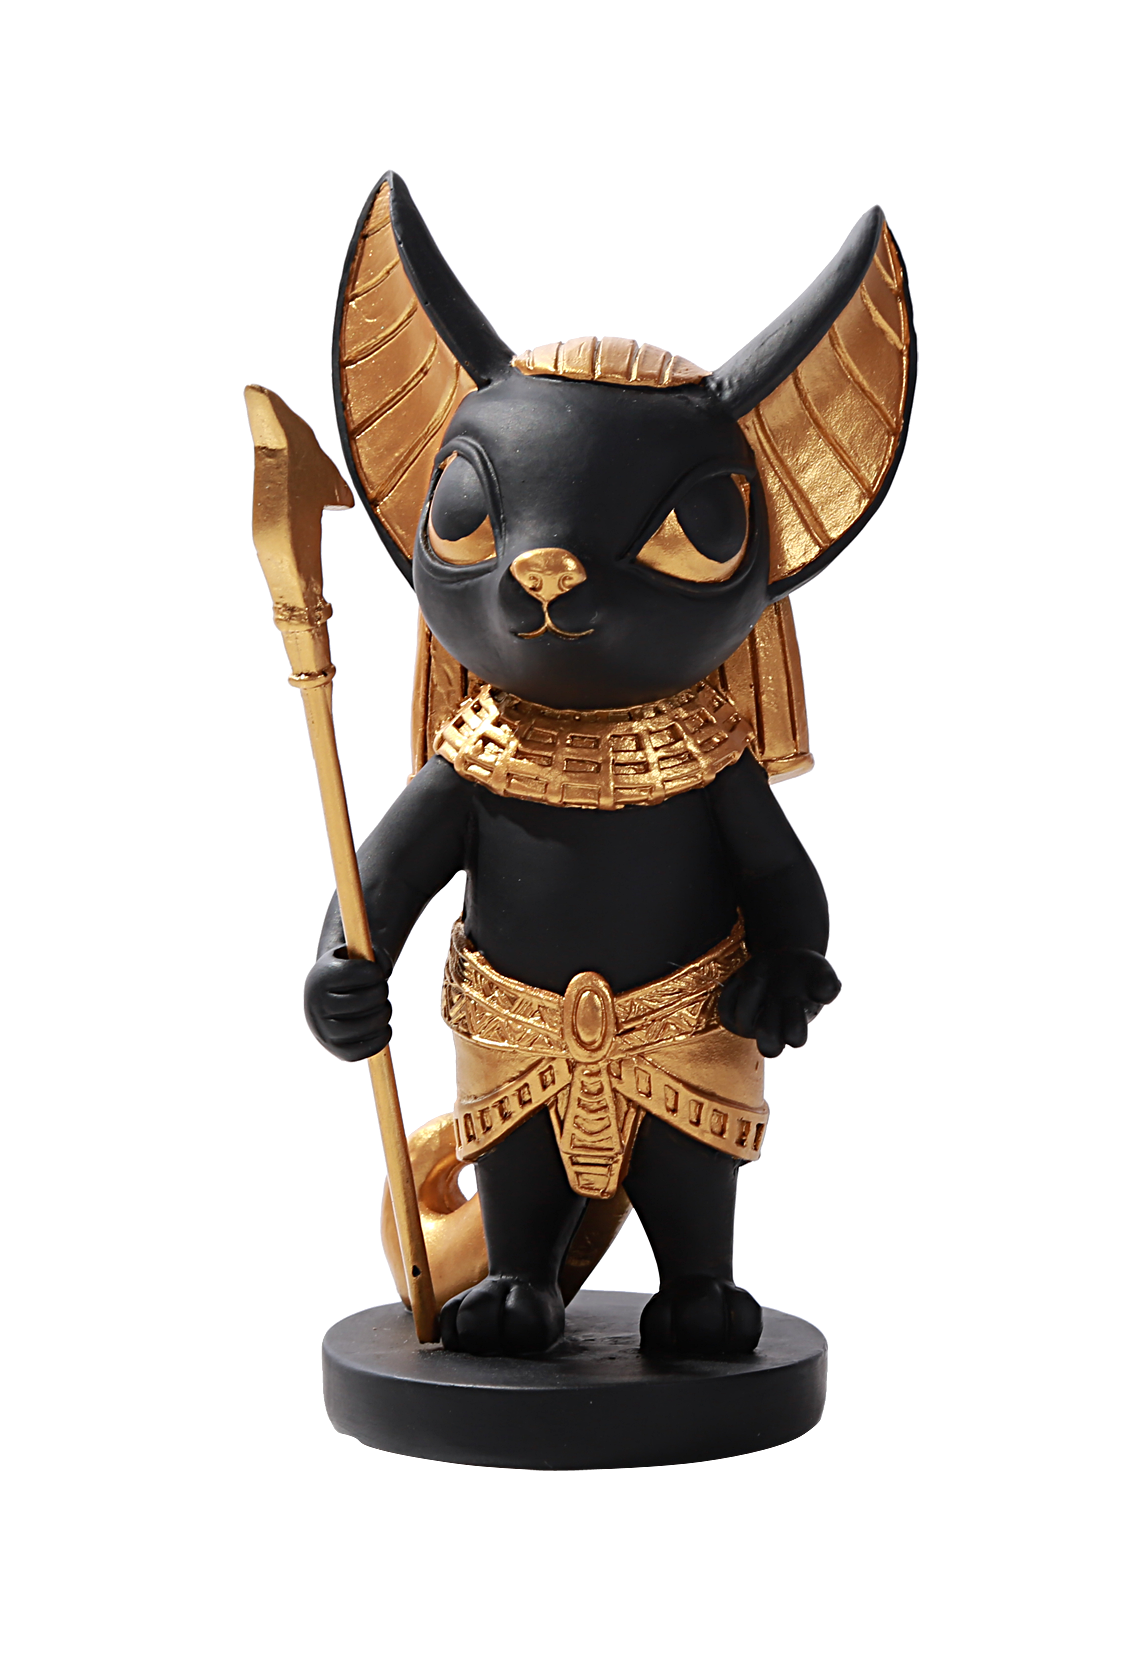 Ancient Egyptian Hieroglyph Inspired Baby Mini Anubis God of Underworld Figurine